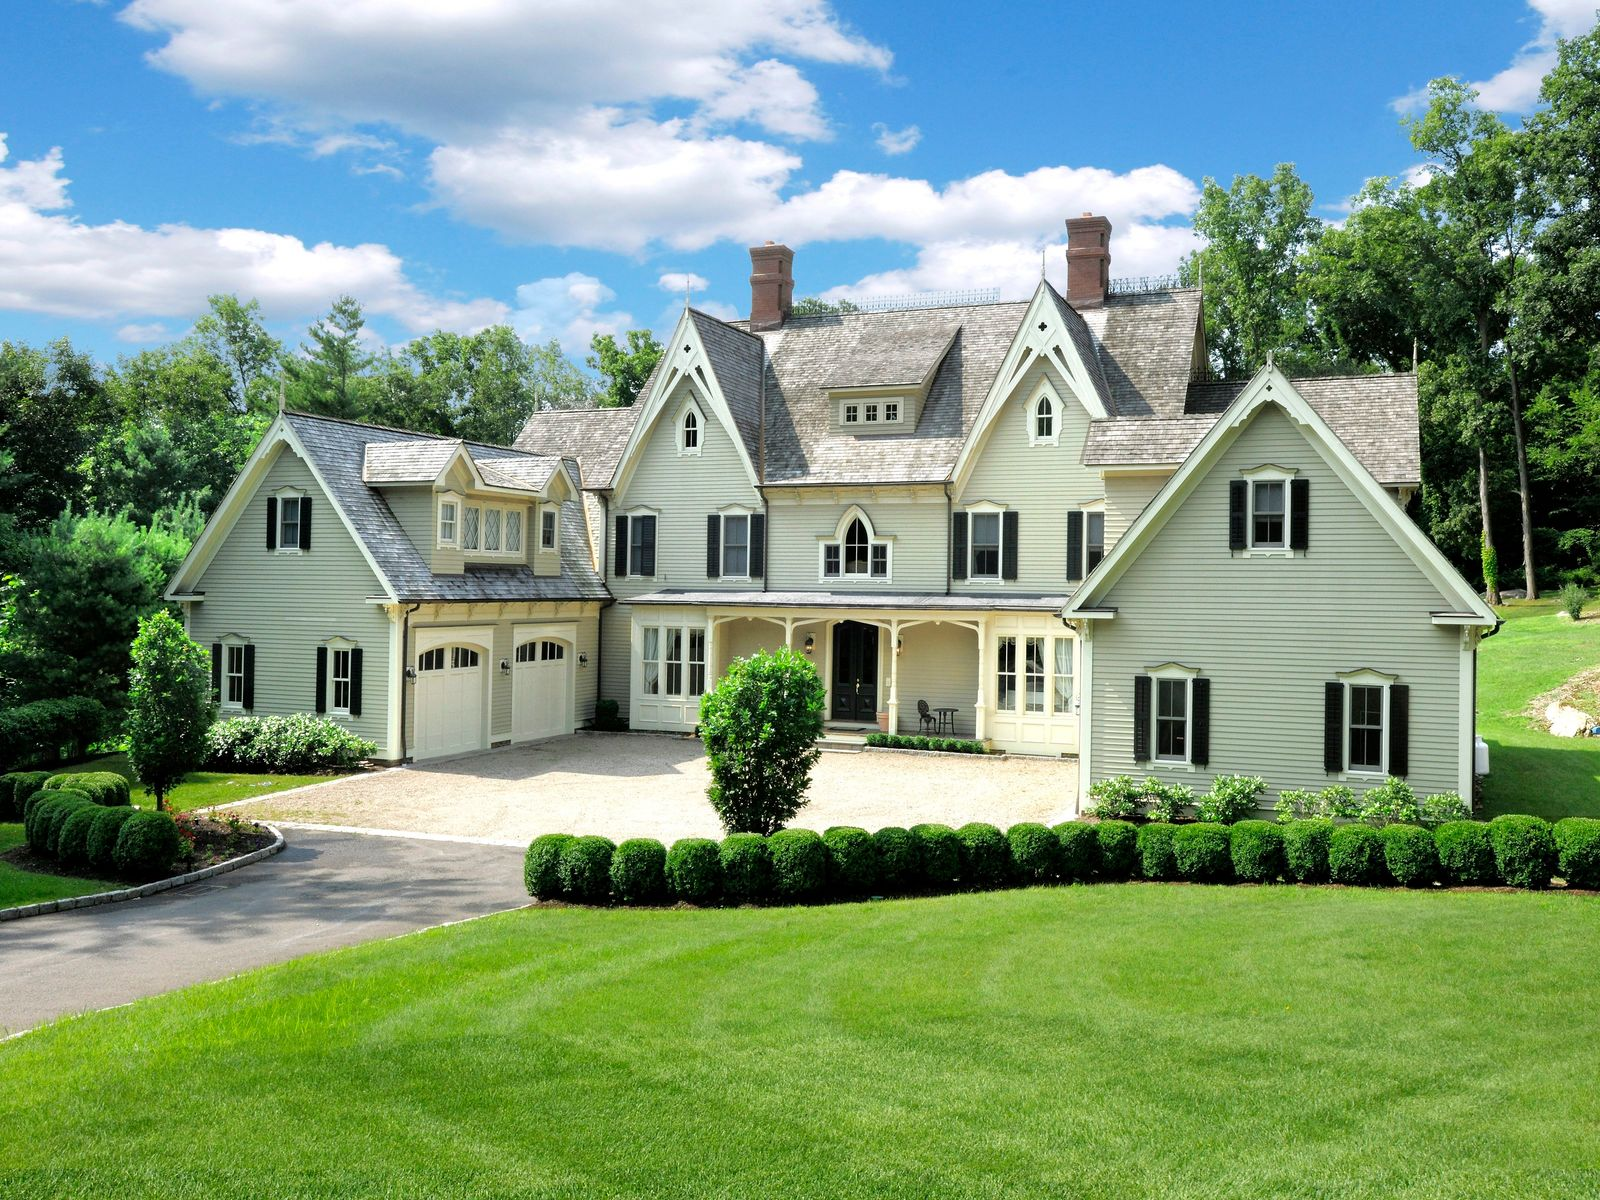 Serenity, Greenwich CT Single Family Home - Greenwich Real Estate